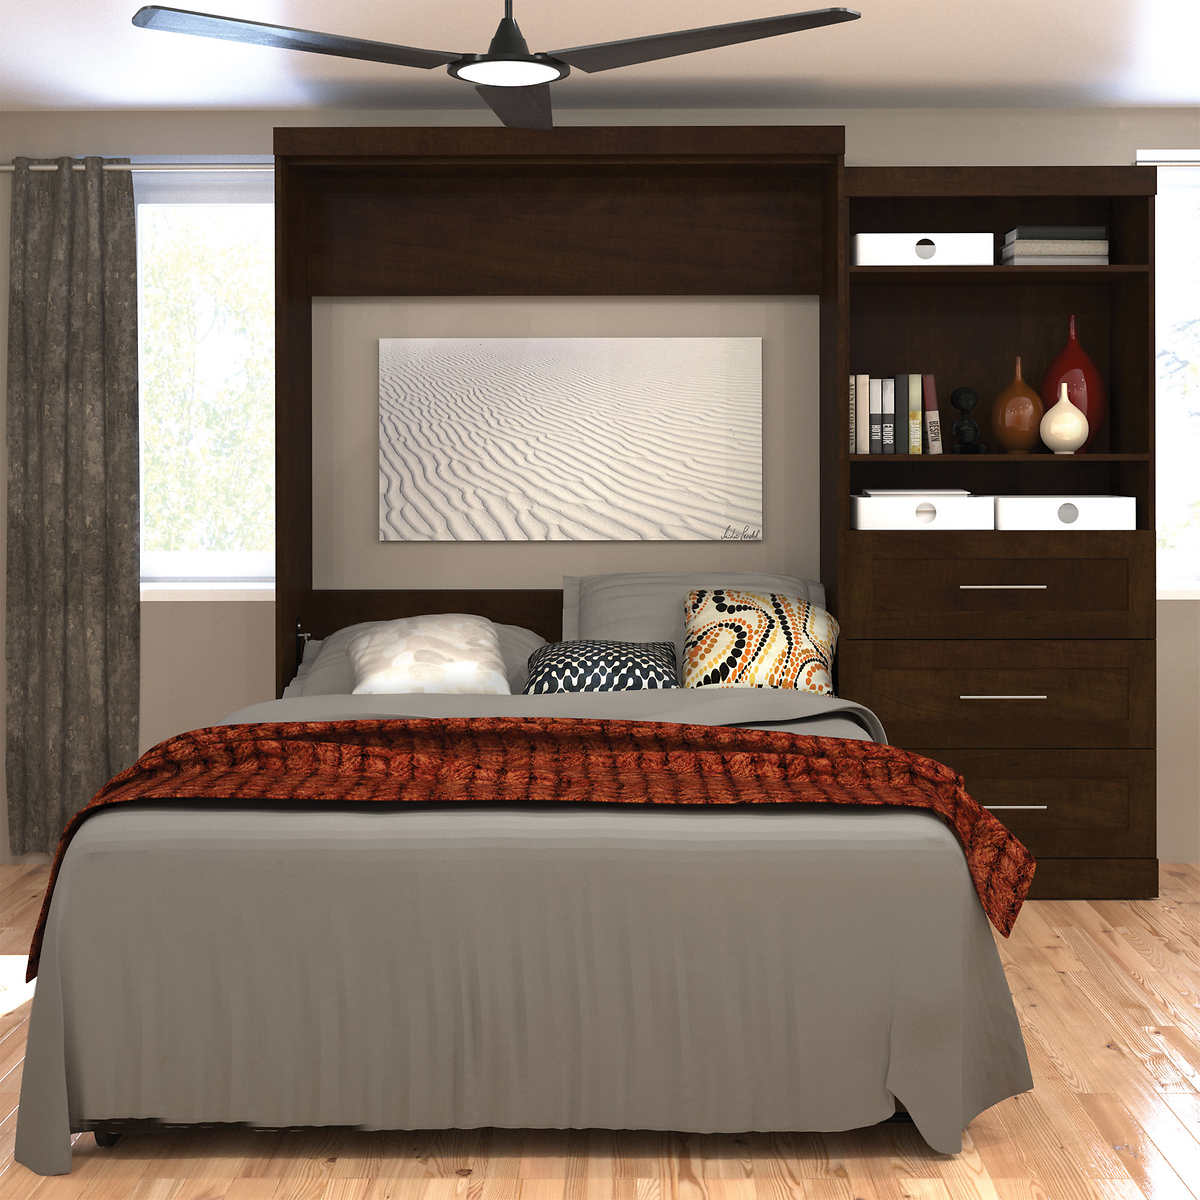 Boutique Queen Wall Bed With One 36 Storage Unit Drawers In Brown